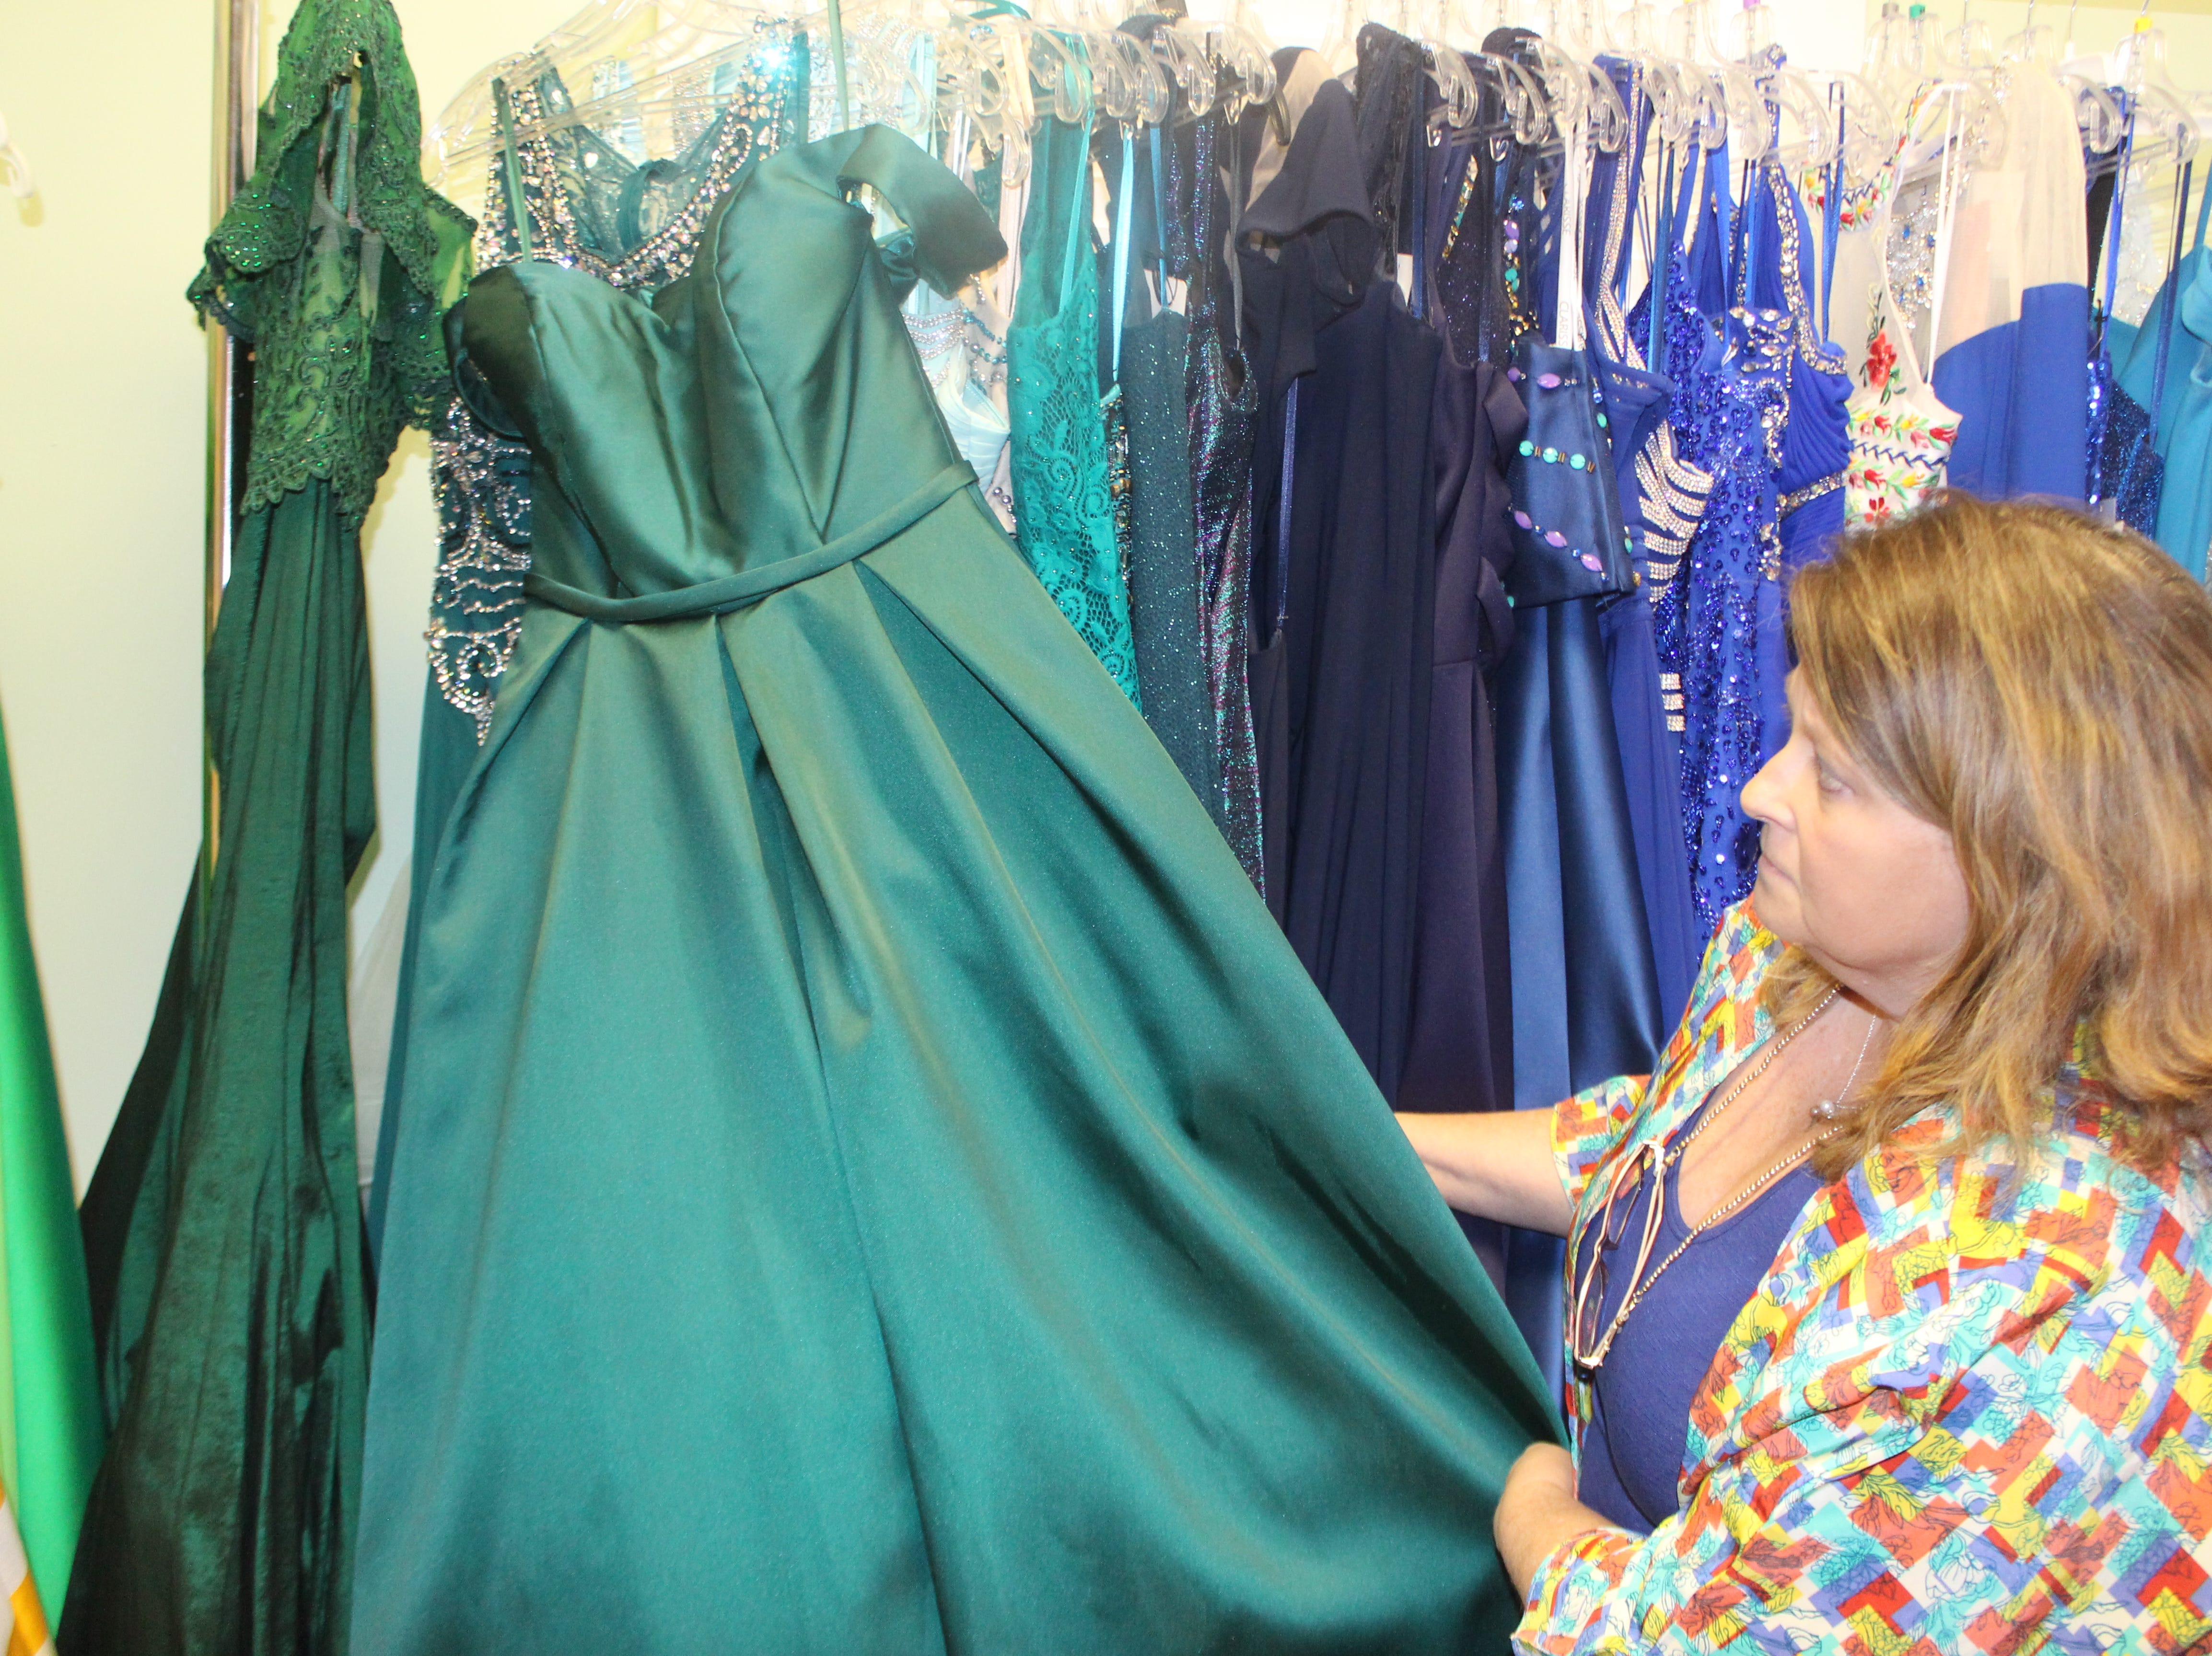 Wedding Belles owner Lisa Forest shows off a ball gown in one of the hot hues of the season, forest green.